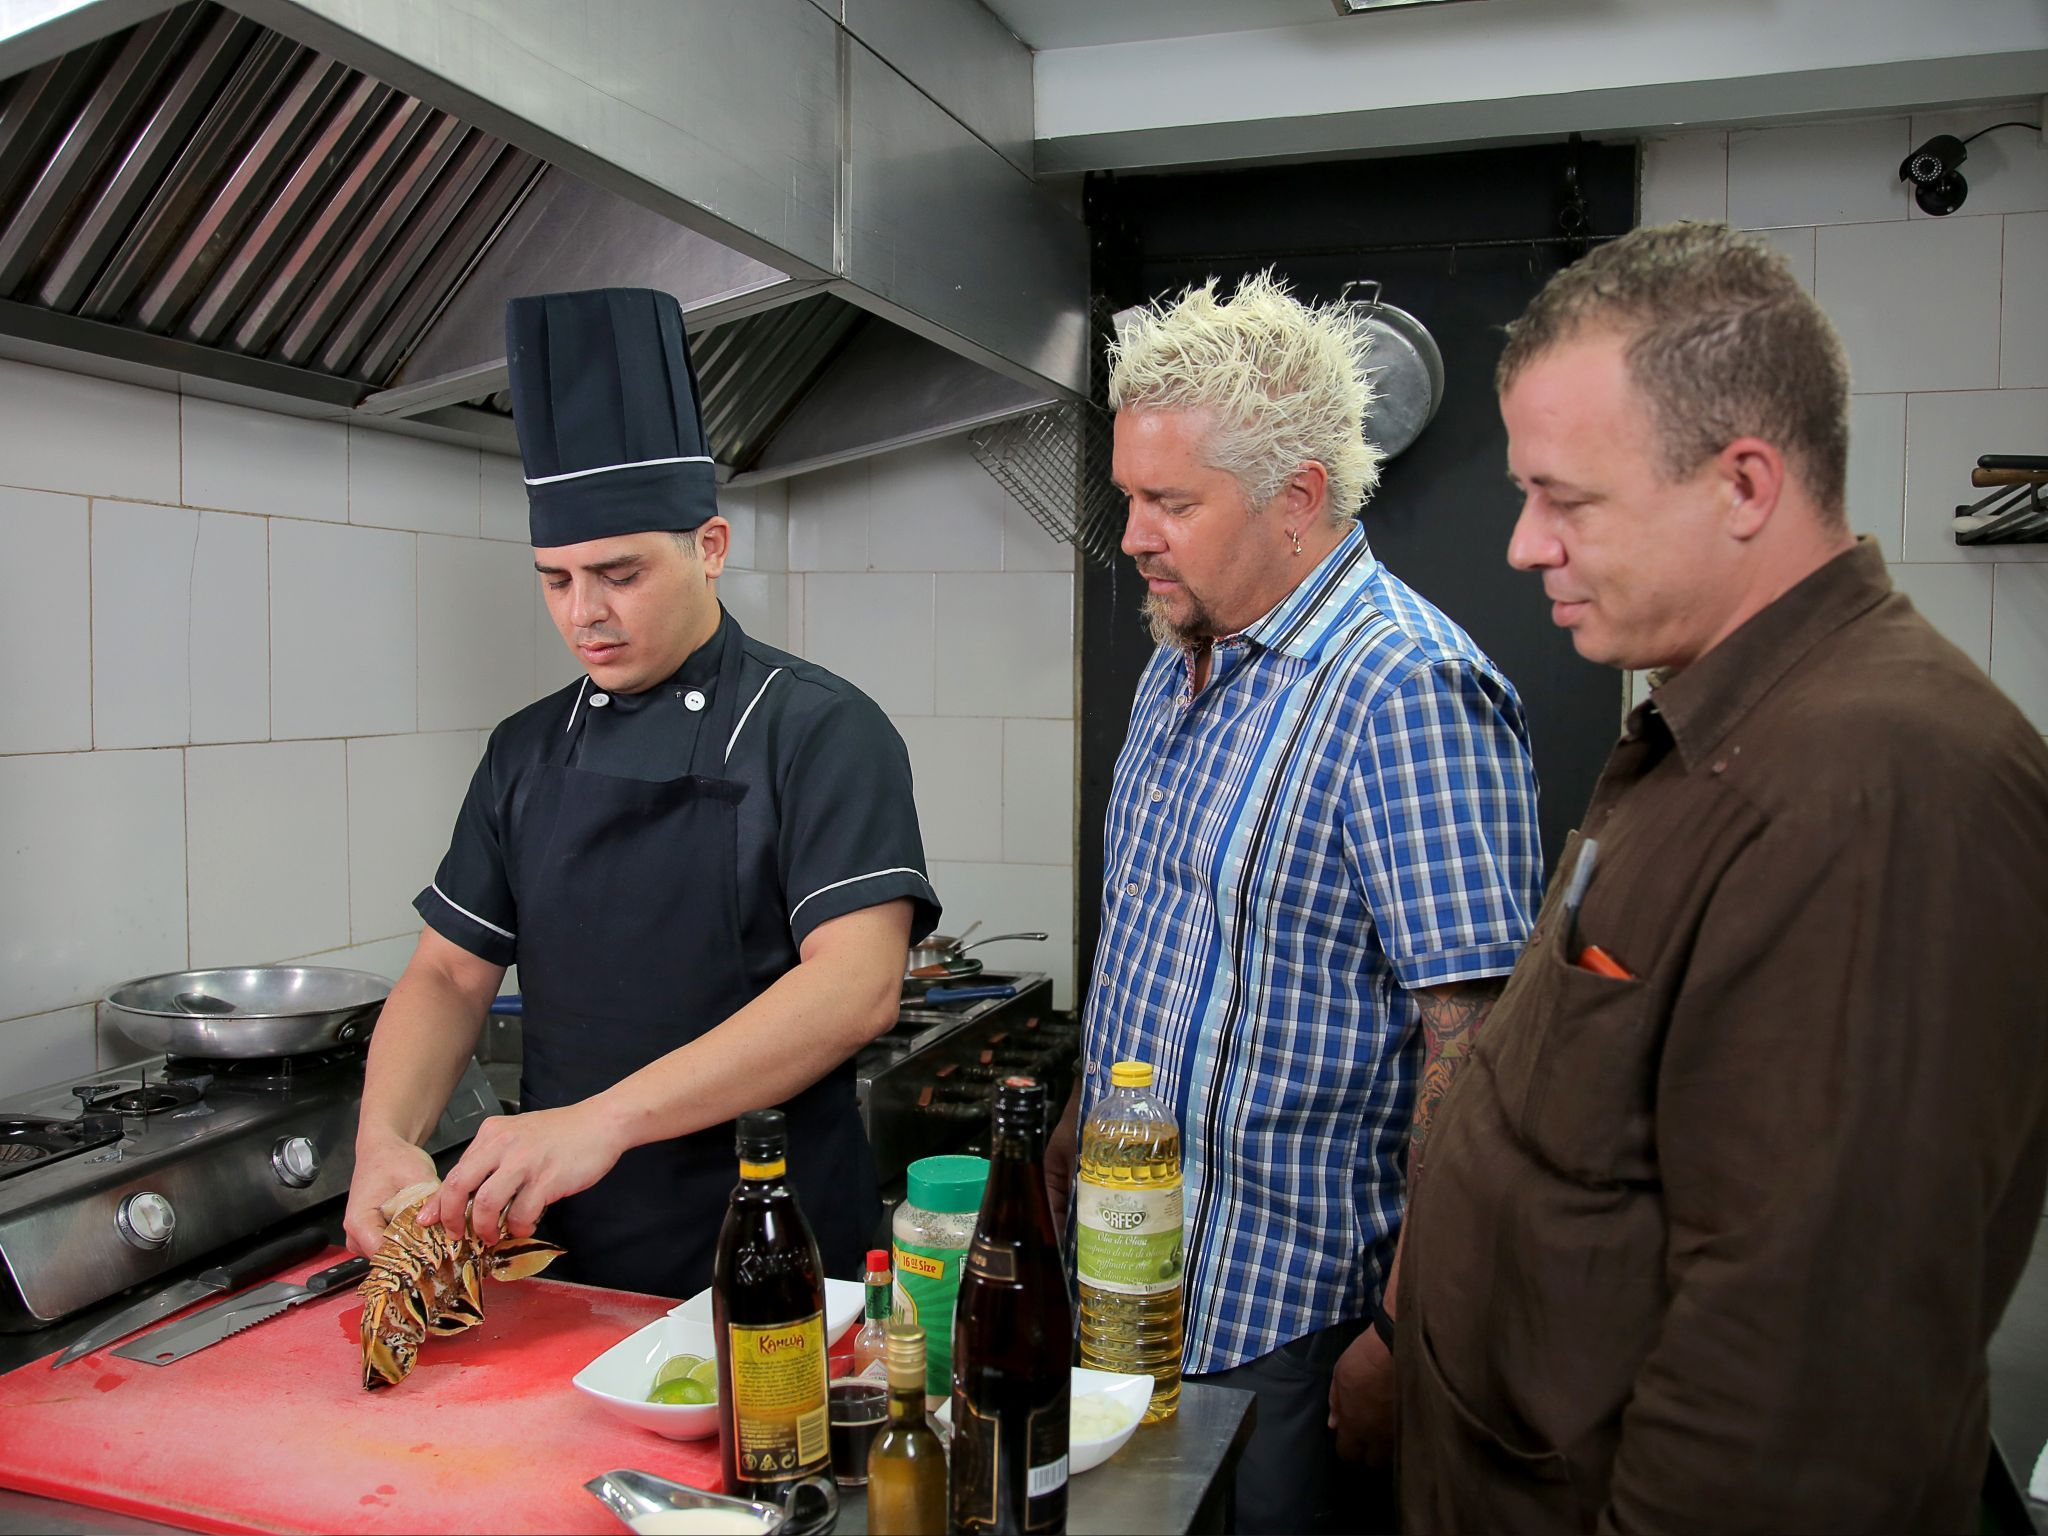 Guy Fieri Takes Diners, Drive-Ins and Dives to Cuba | personal ...